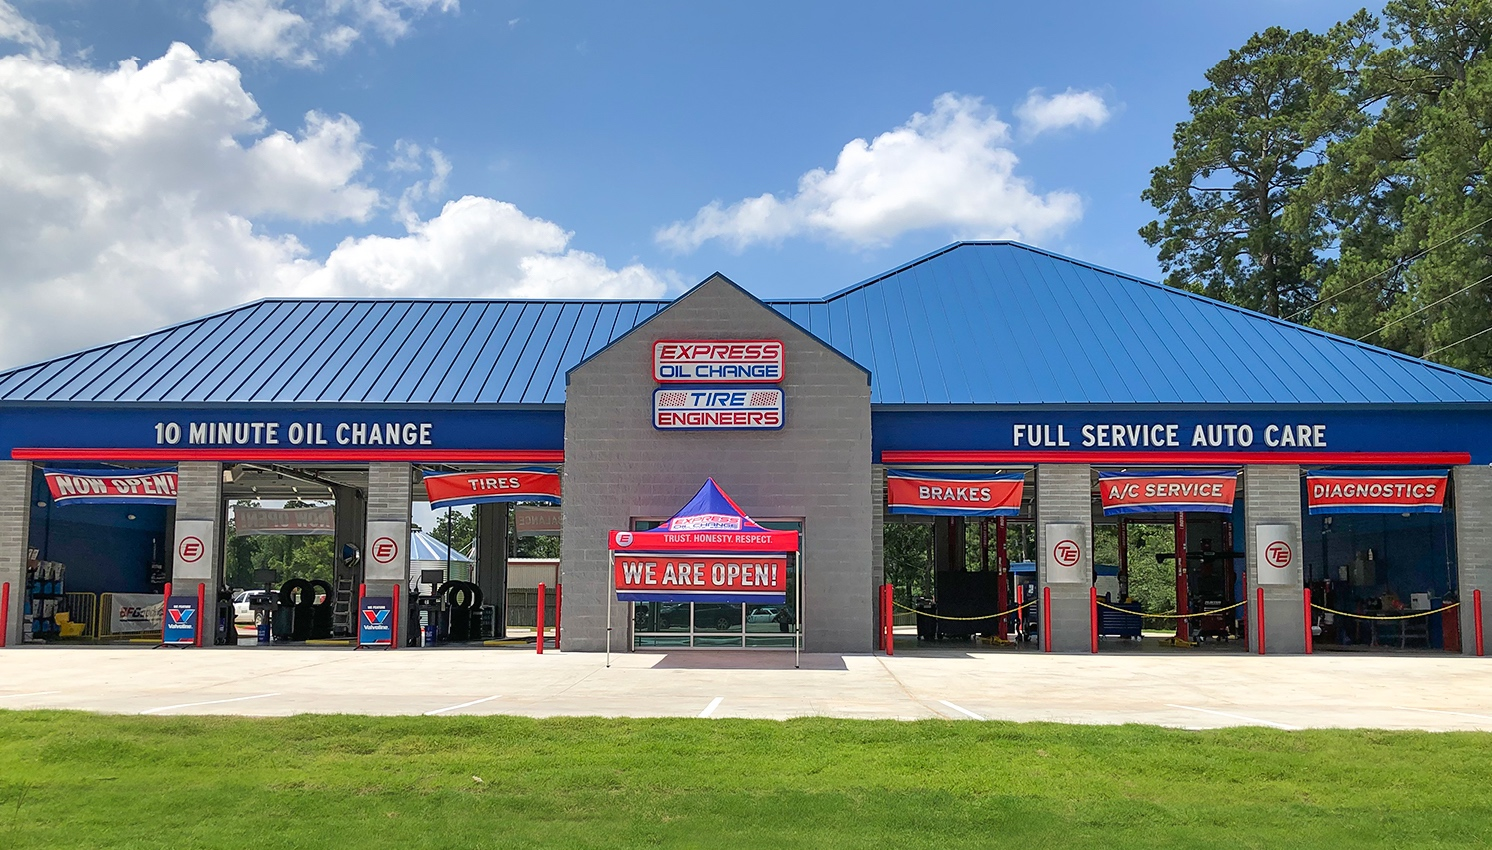 Express Oil Change & Tire Engineers Magnolia, TX - The Woodlands store